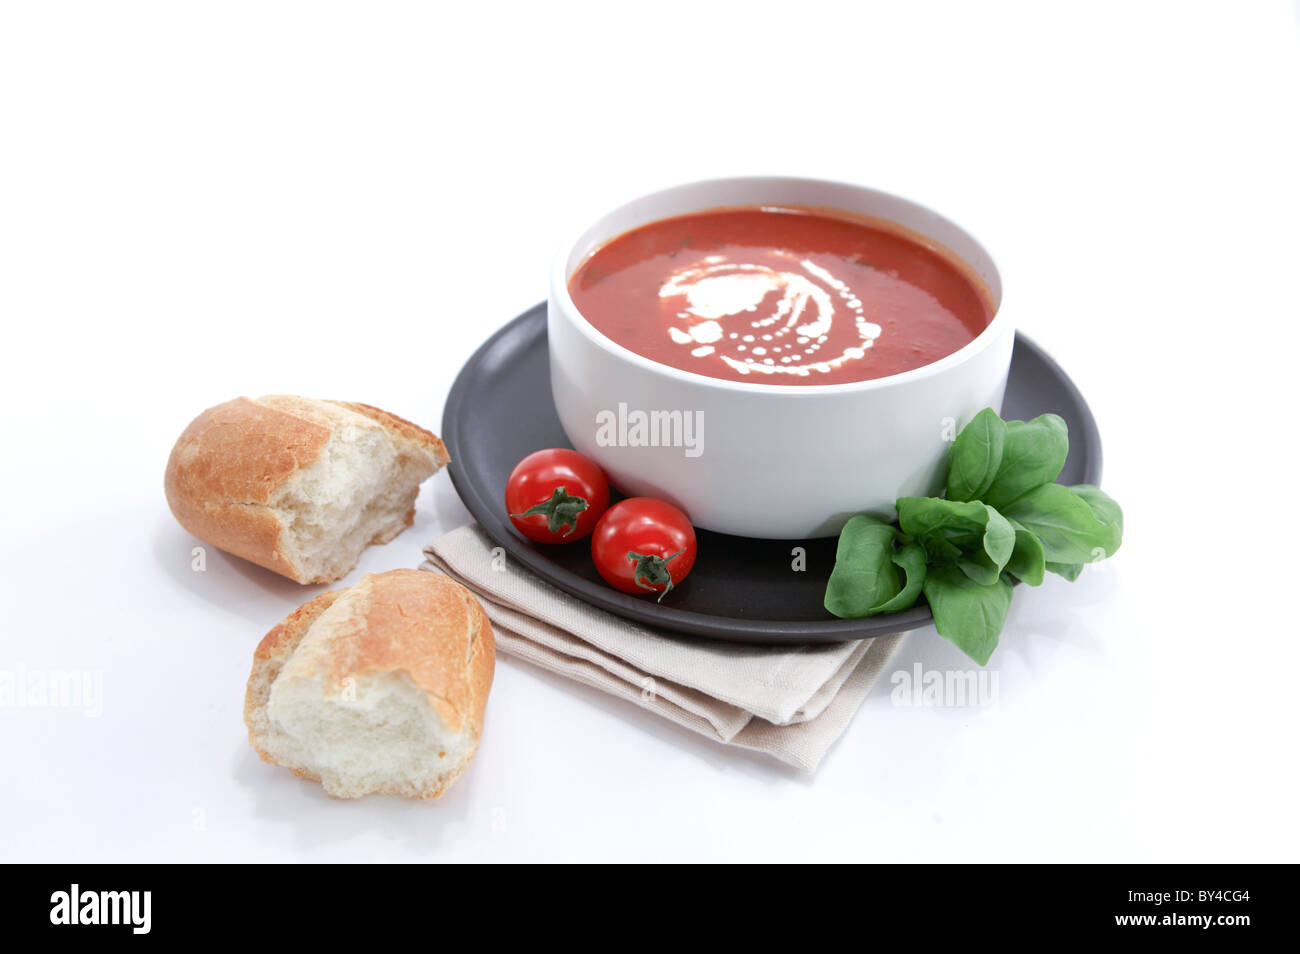 Tomato and Basil Soup with Crusty Roll - Stock Image